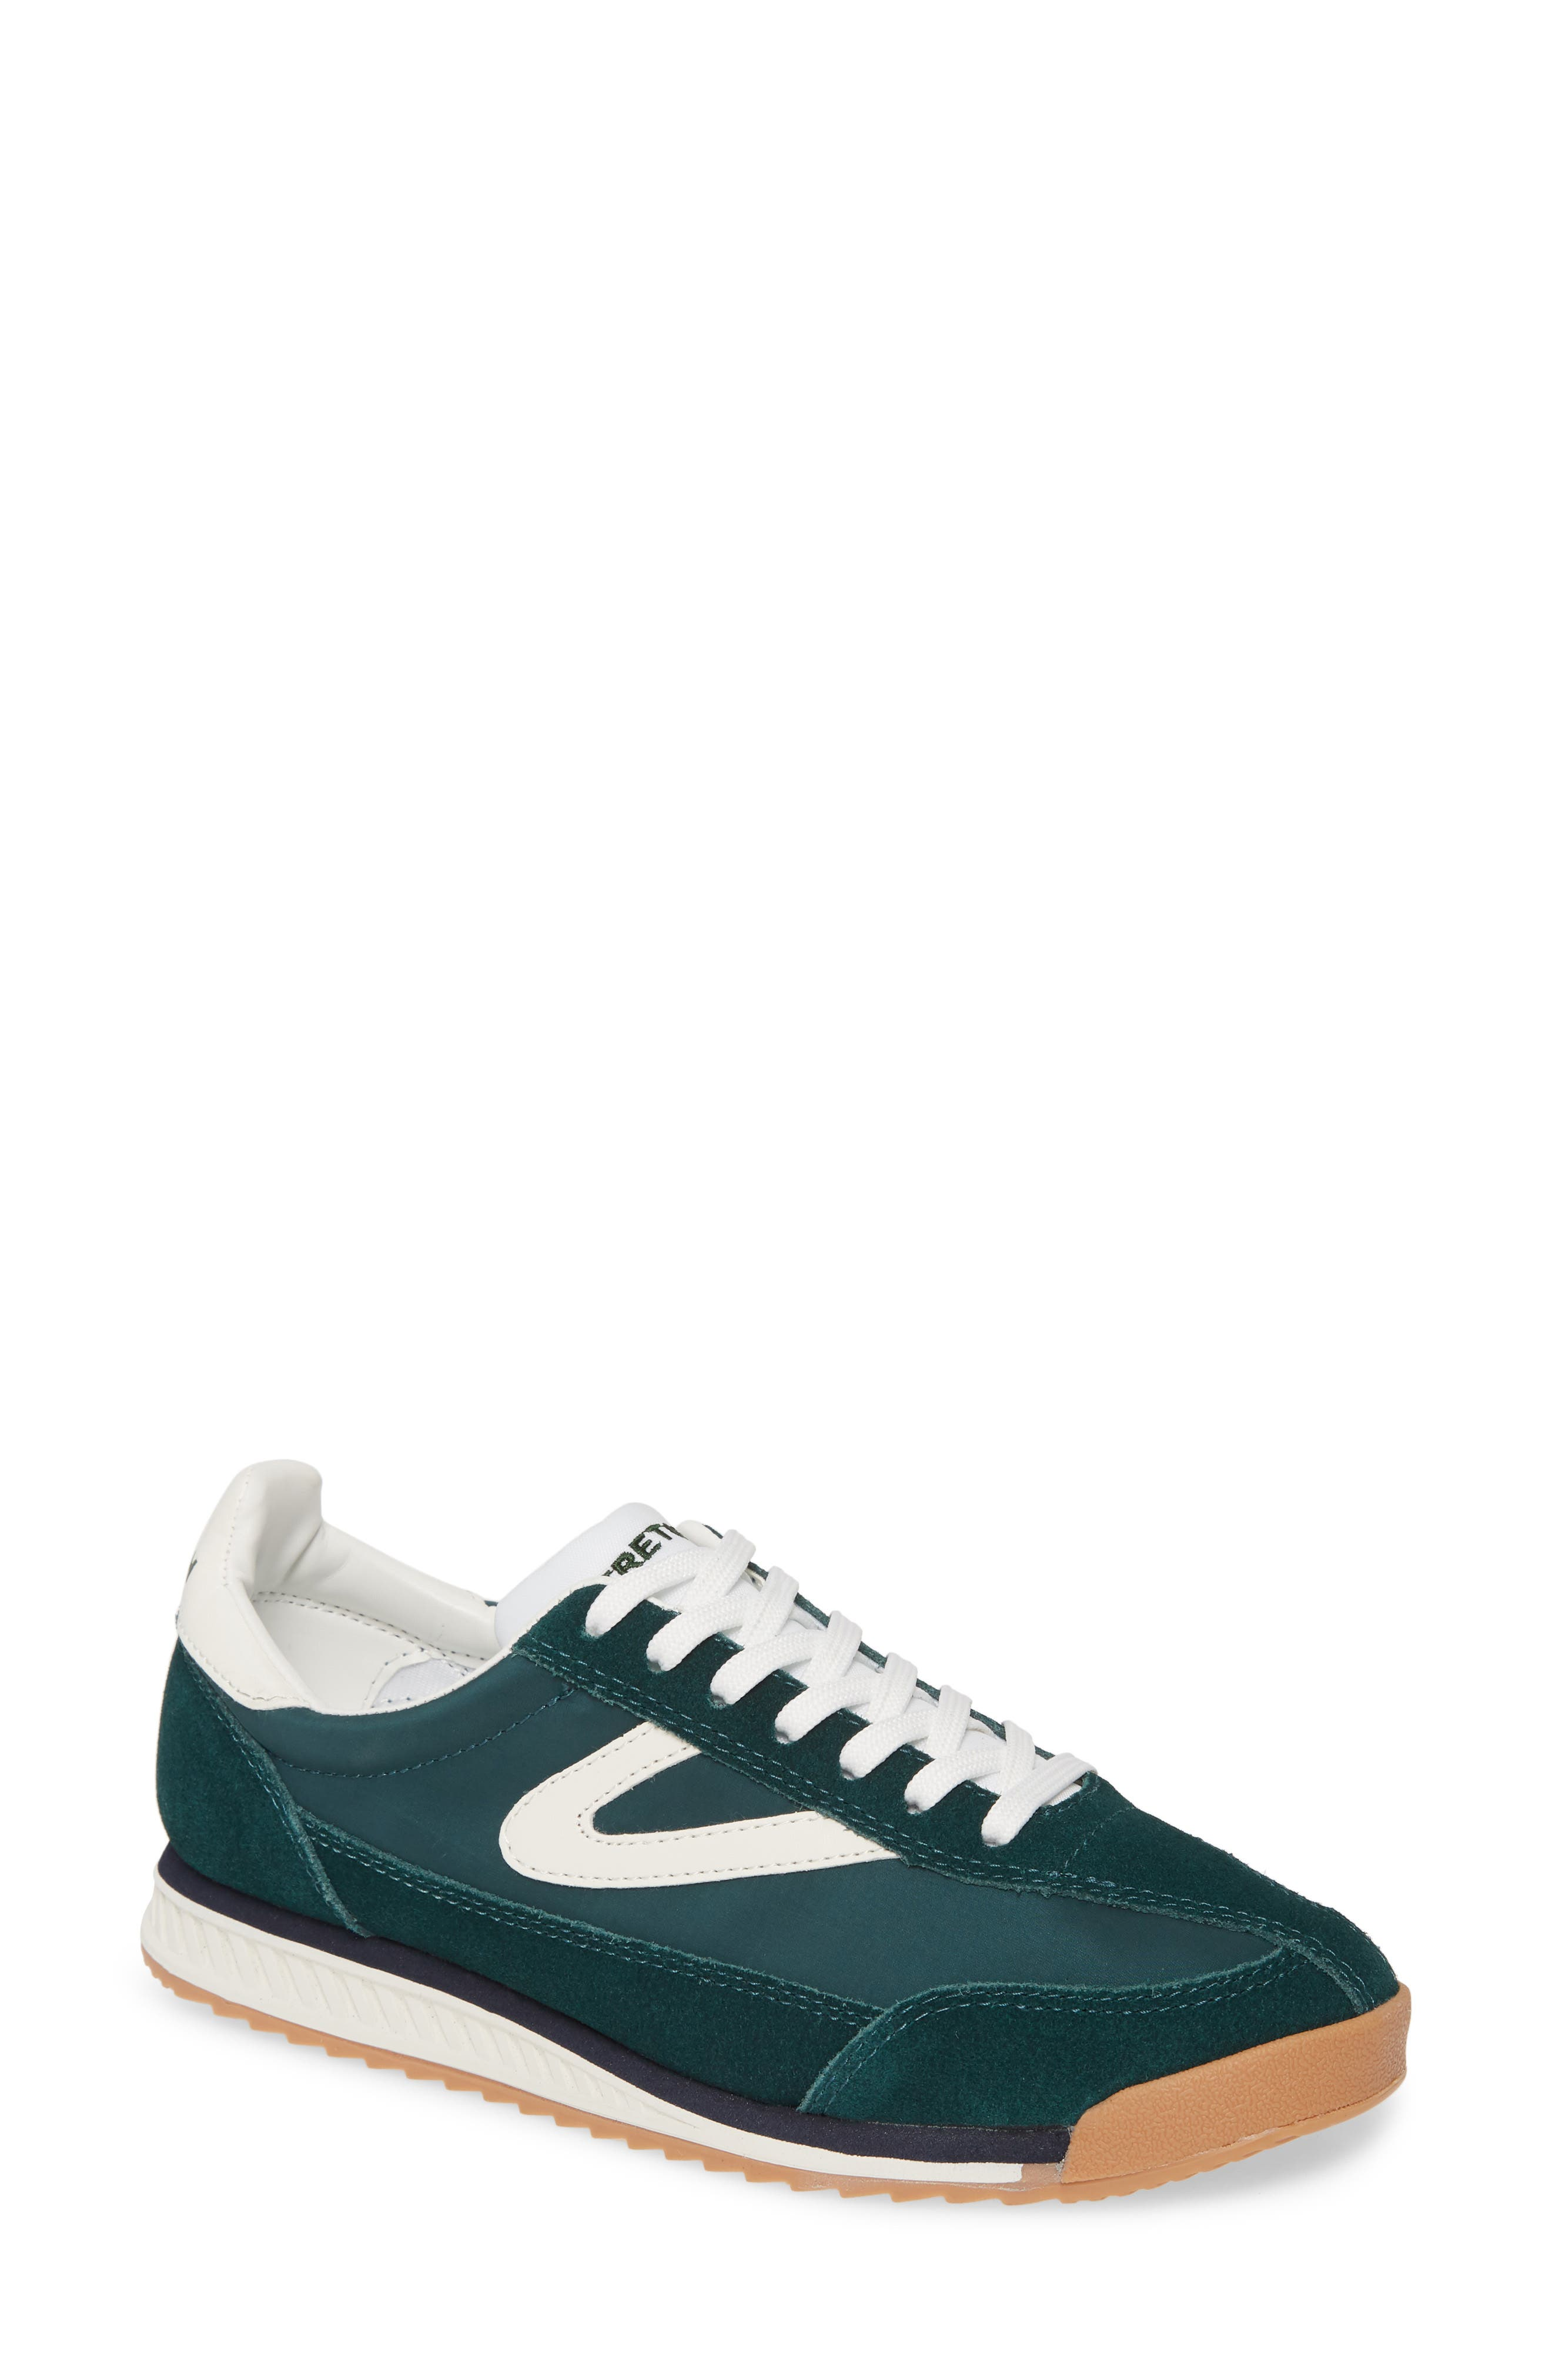 Women's Sneakers Tretorn Shoes | Nordstrom